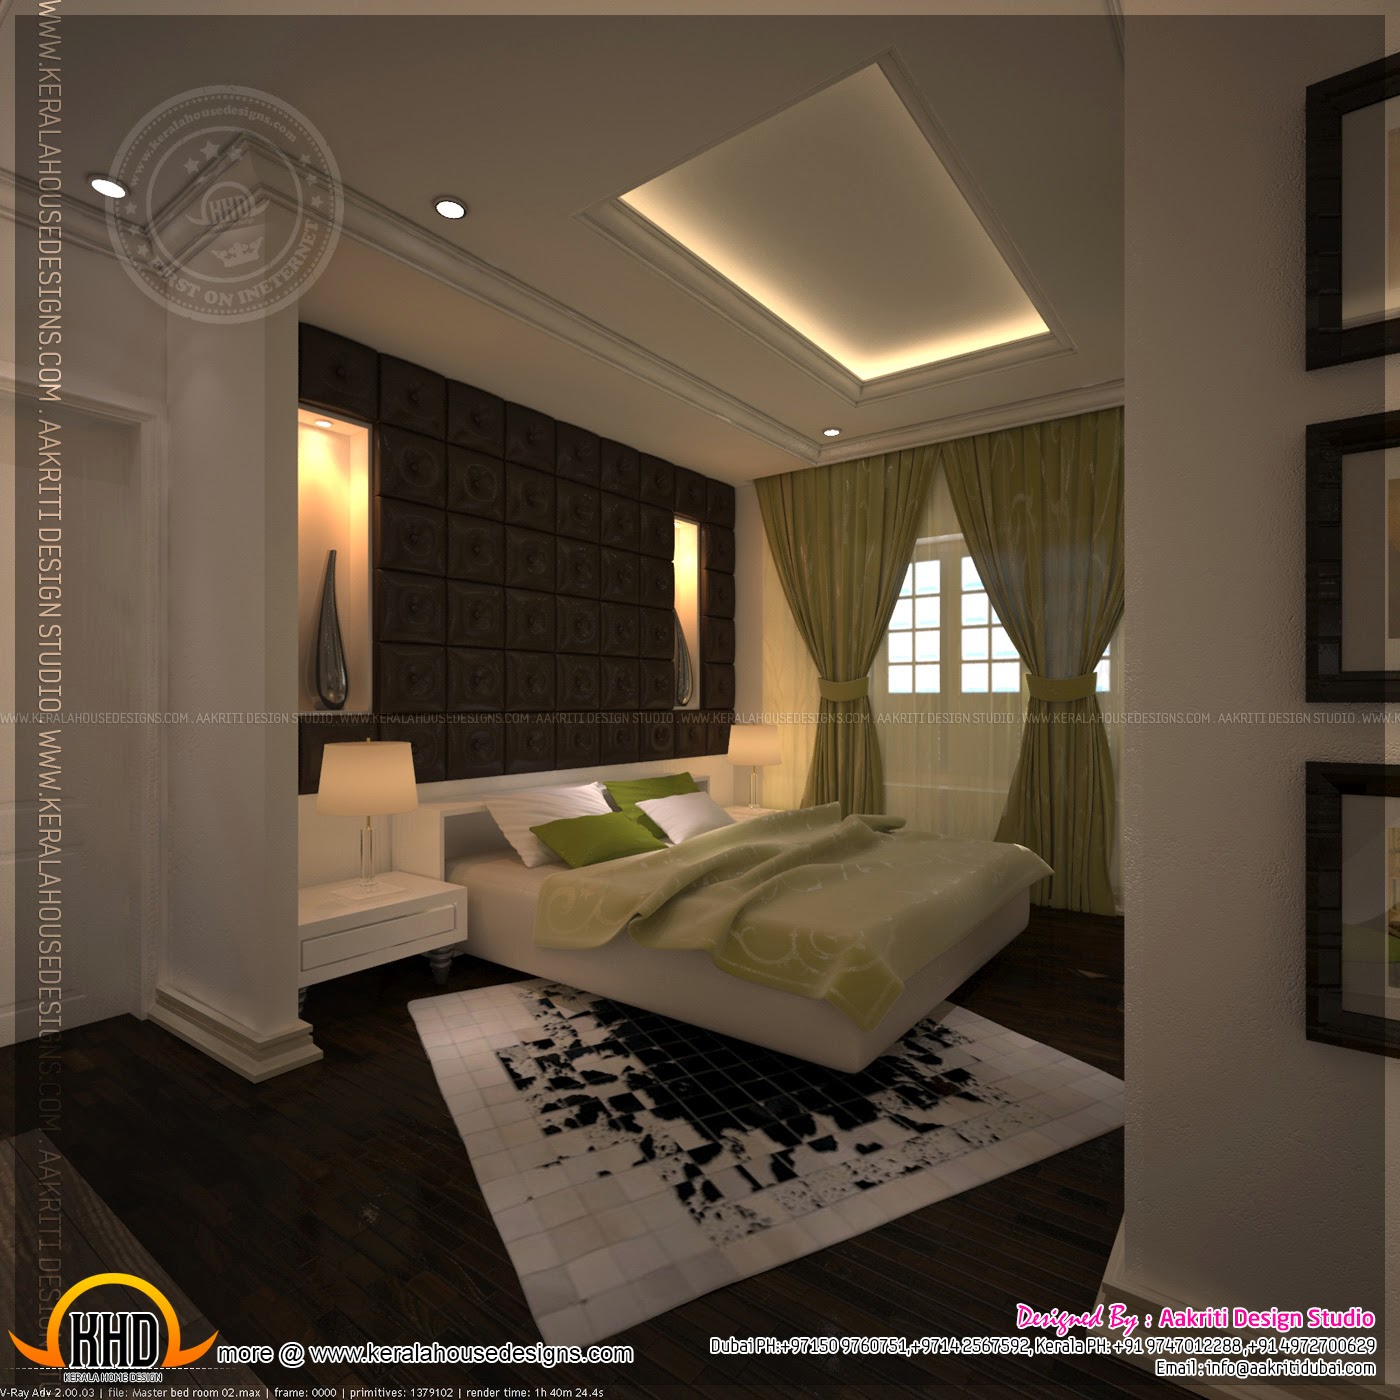 April 2015 home kerala plans for Master bedroom interior design images